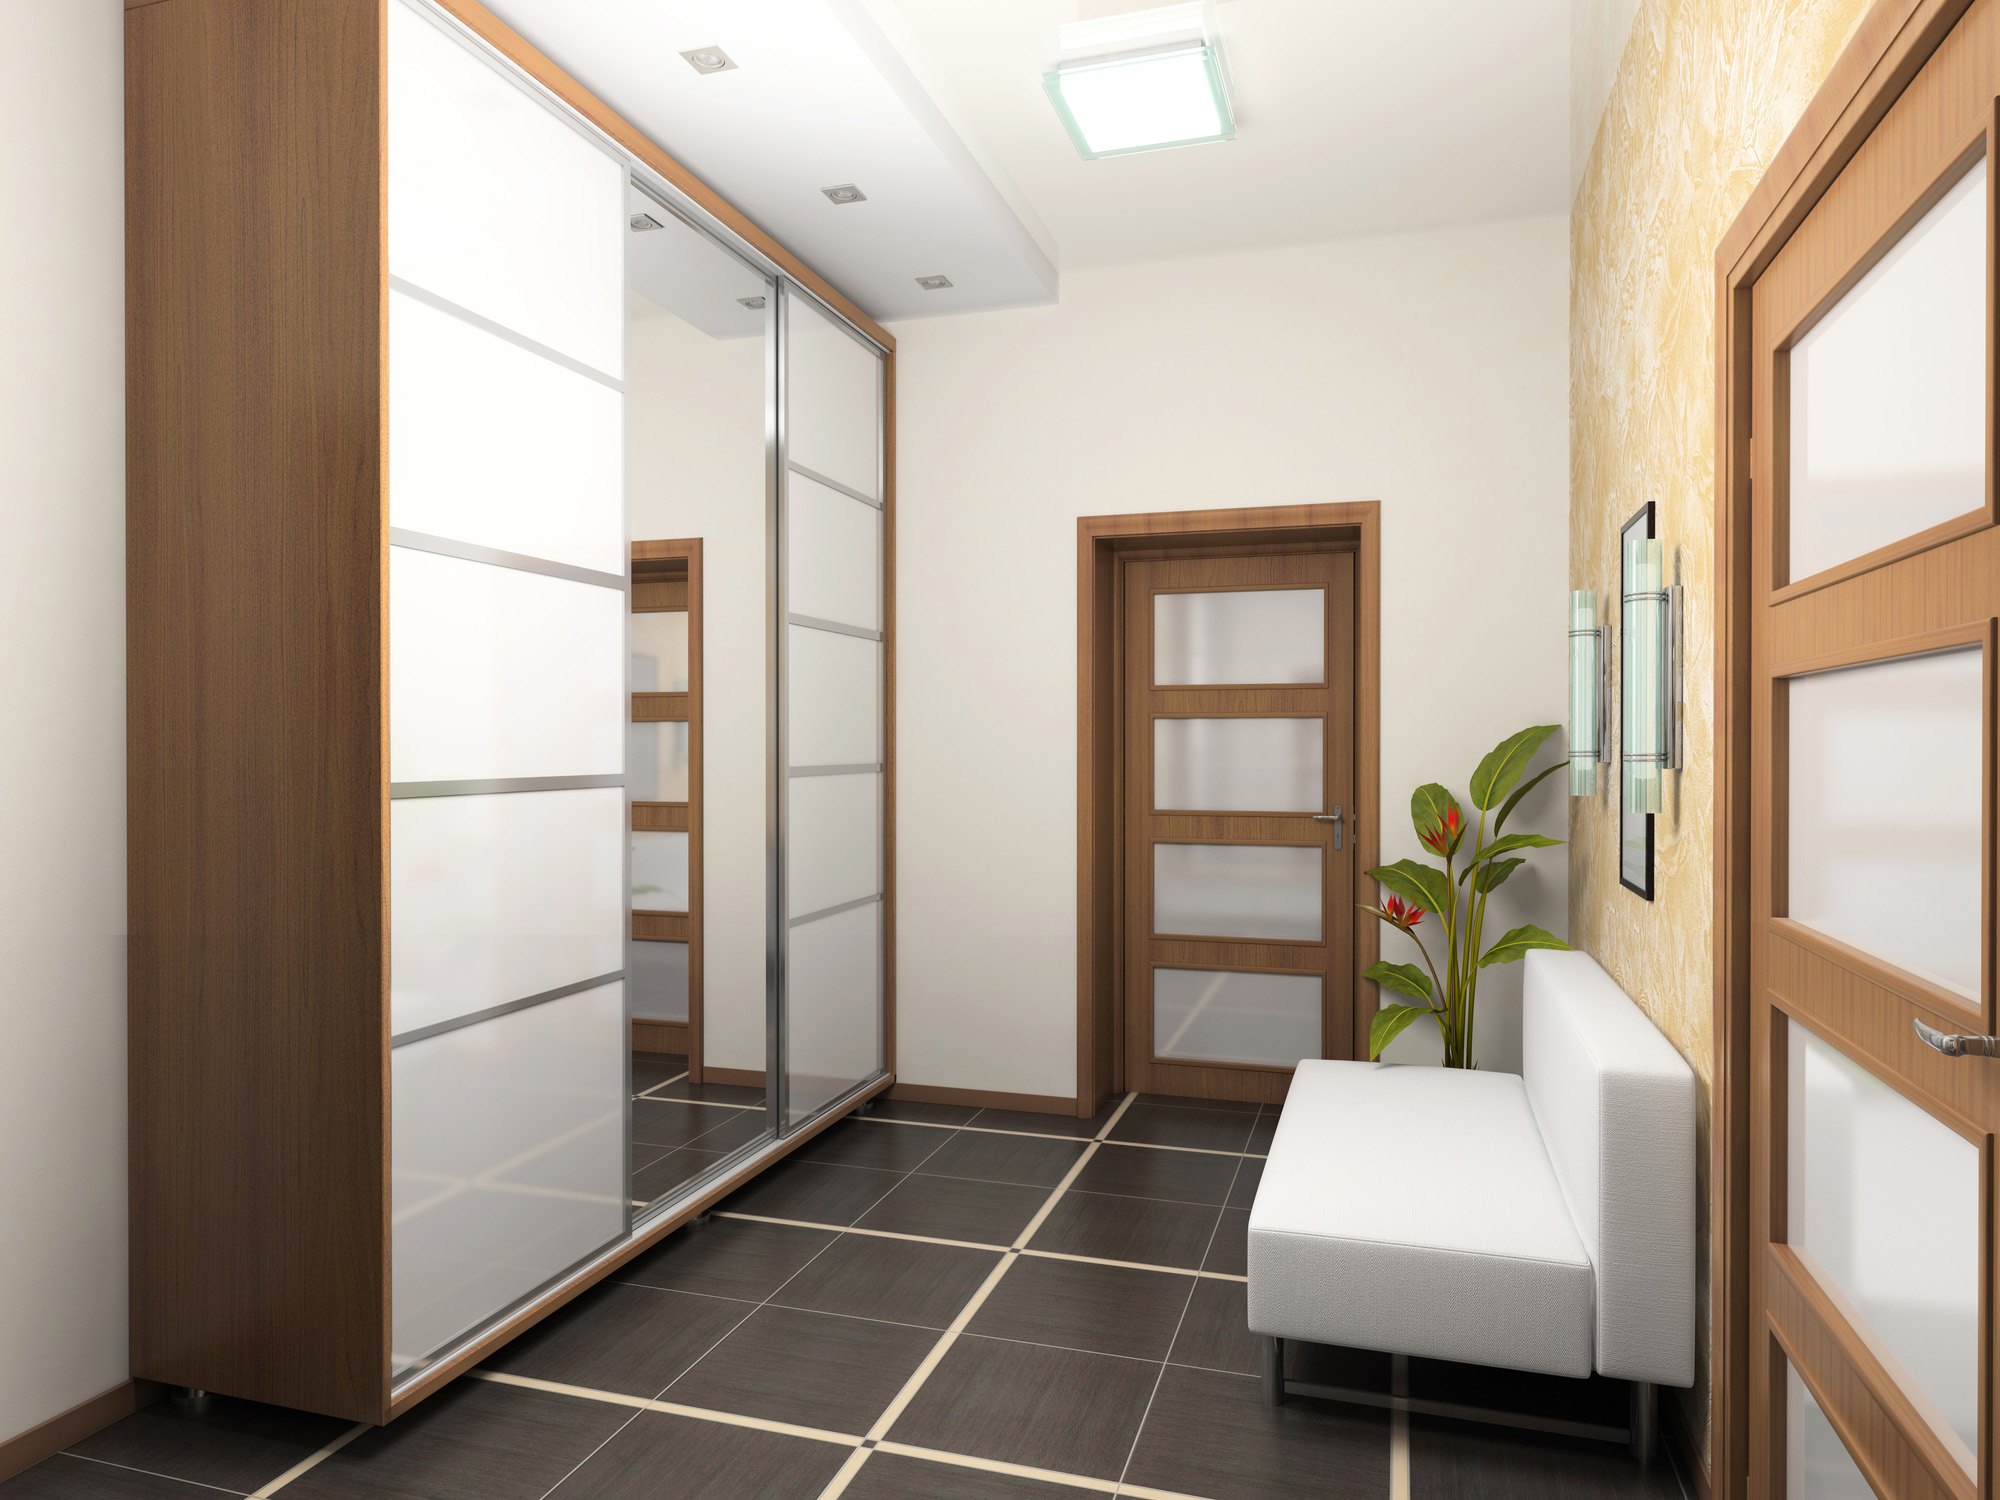 mirrored wardrobes with sliding doors, fitted wardrobe,